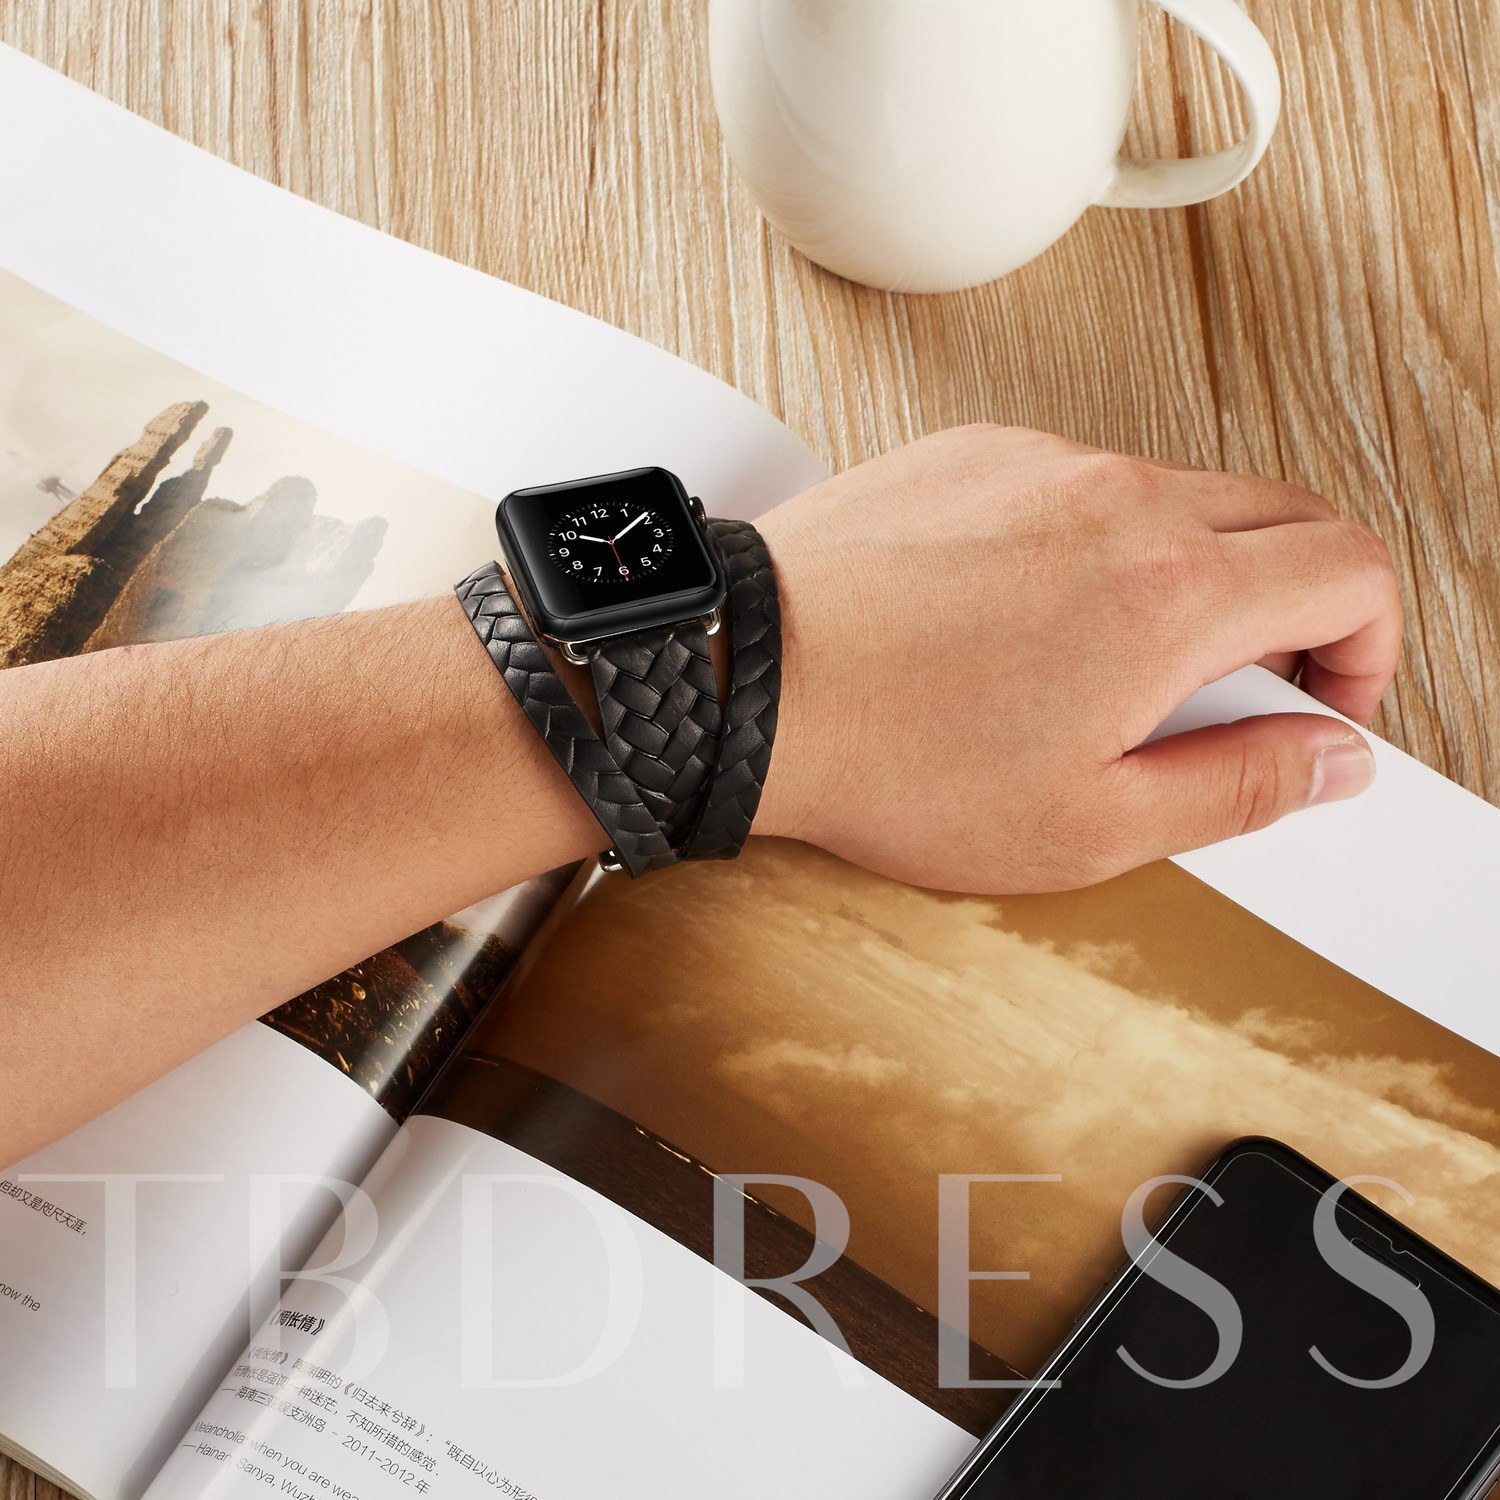 Apple Watch Band Dual Wrist Band Floral Printed Leather